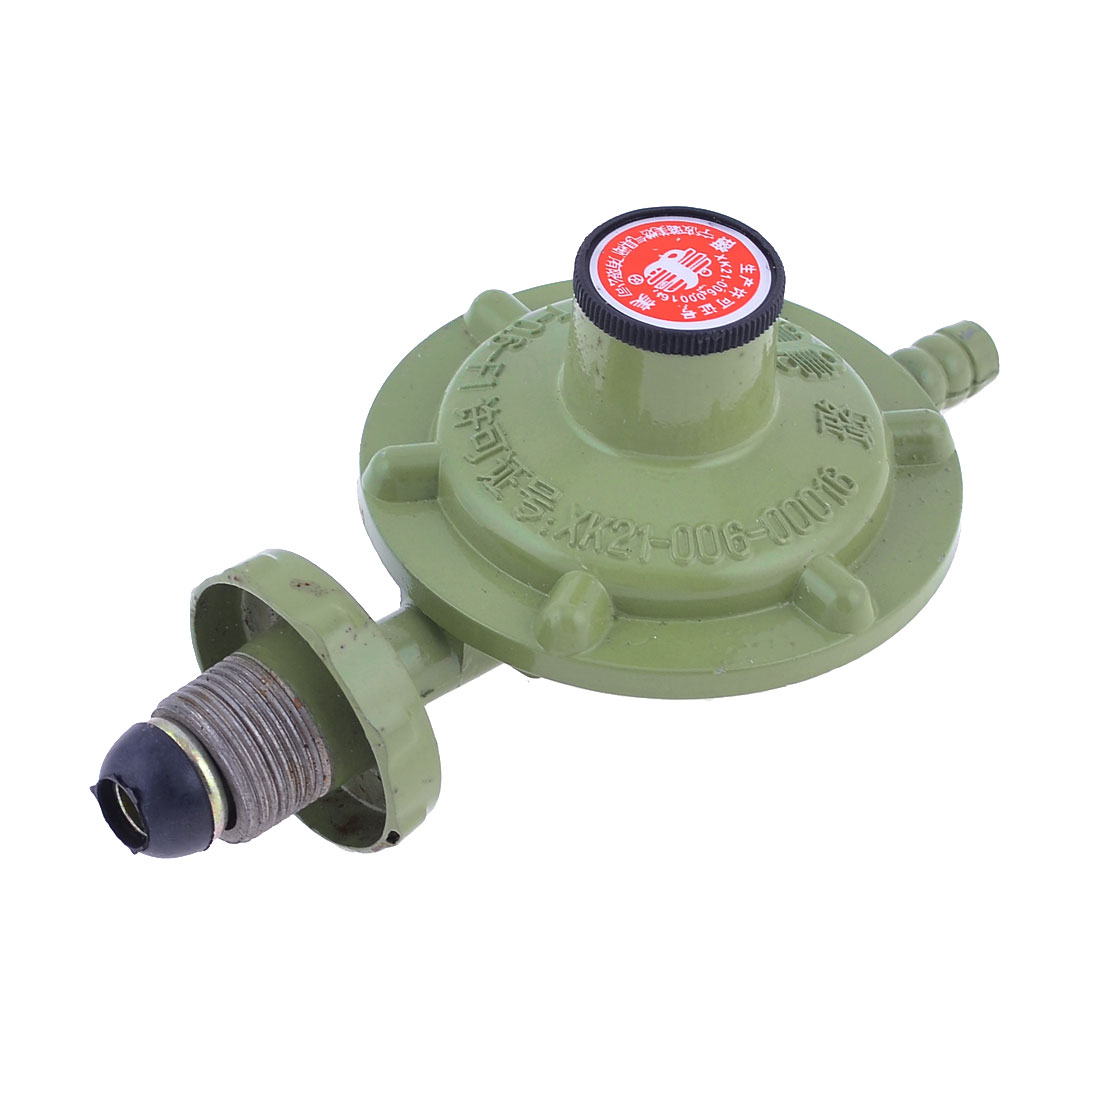 "Home Replacement Olive Green Metal Liquefied LPG Gas Reducer Regulator 1/2""PT"